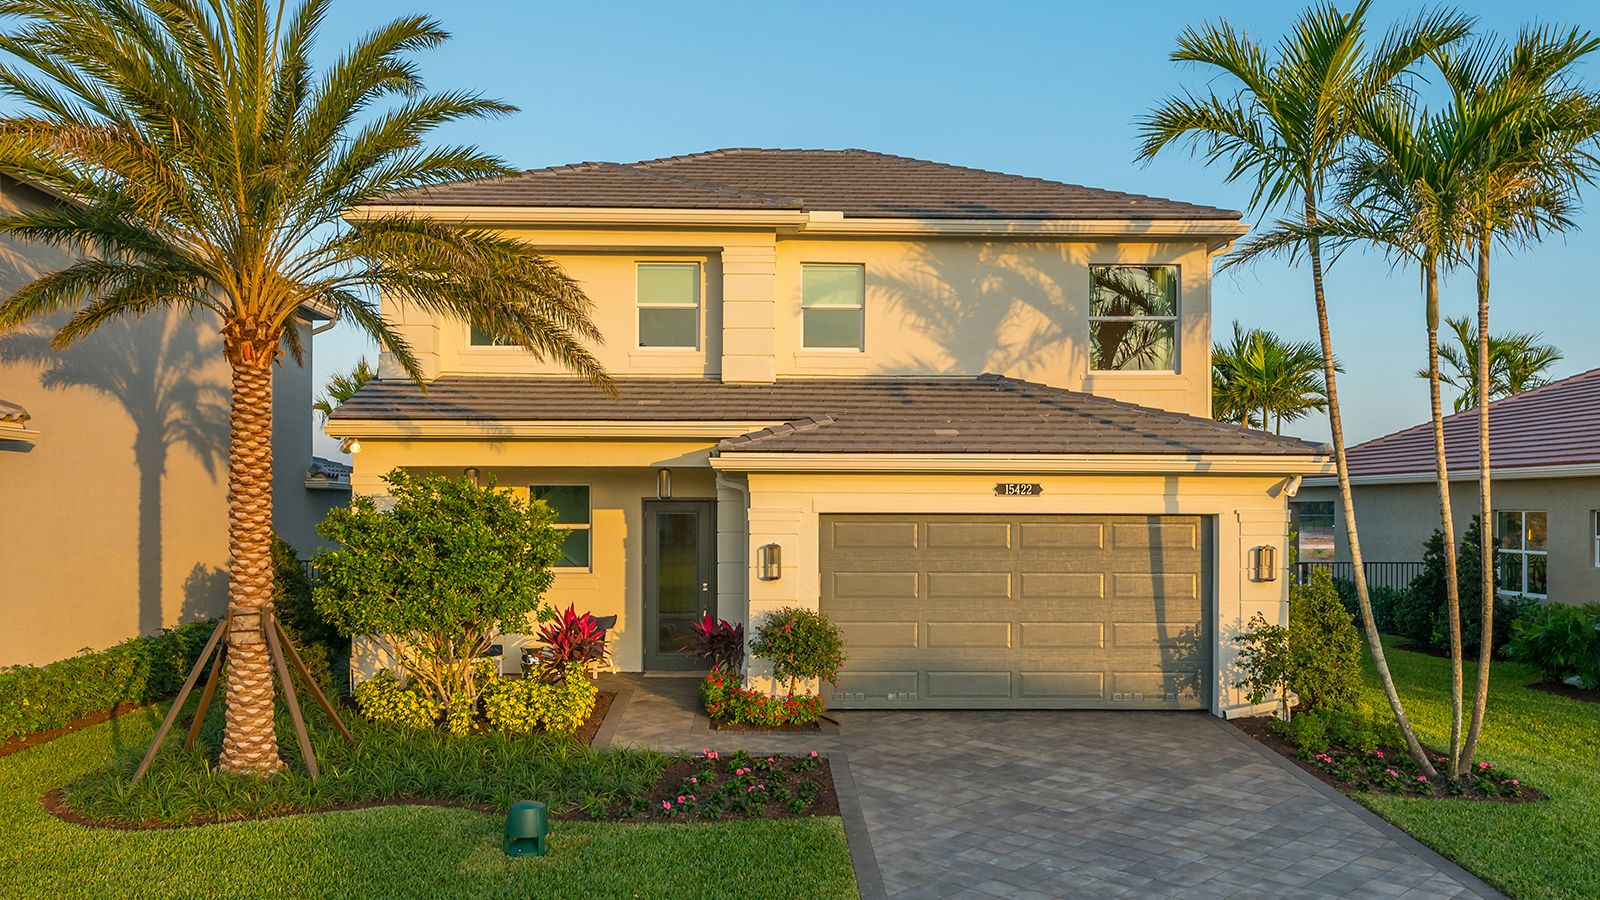 New Construction Homes & Plans in Palm Beach County, FL | 841 Homes ...